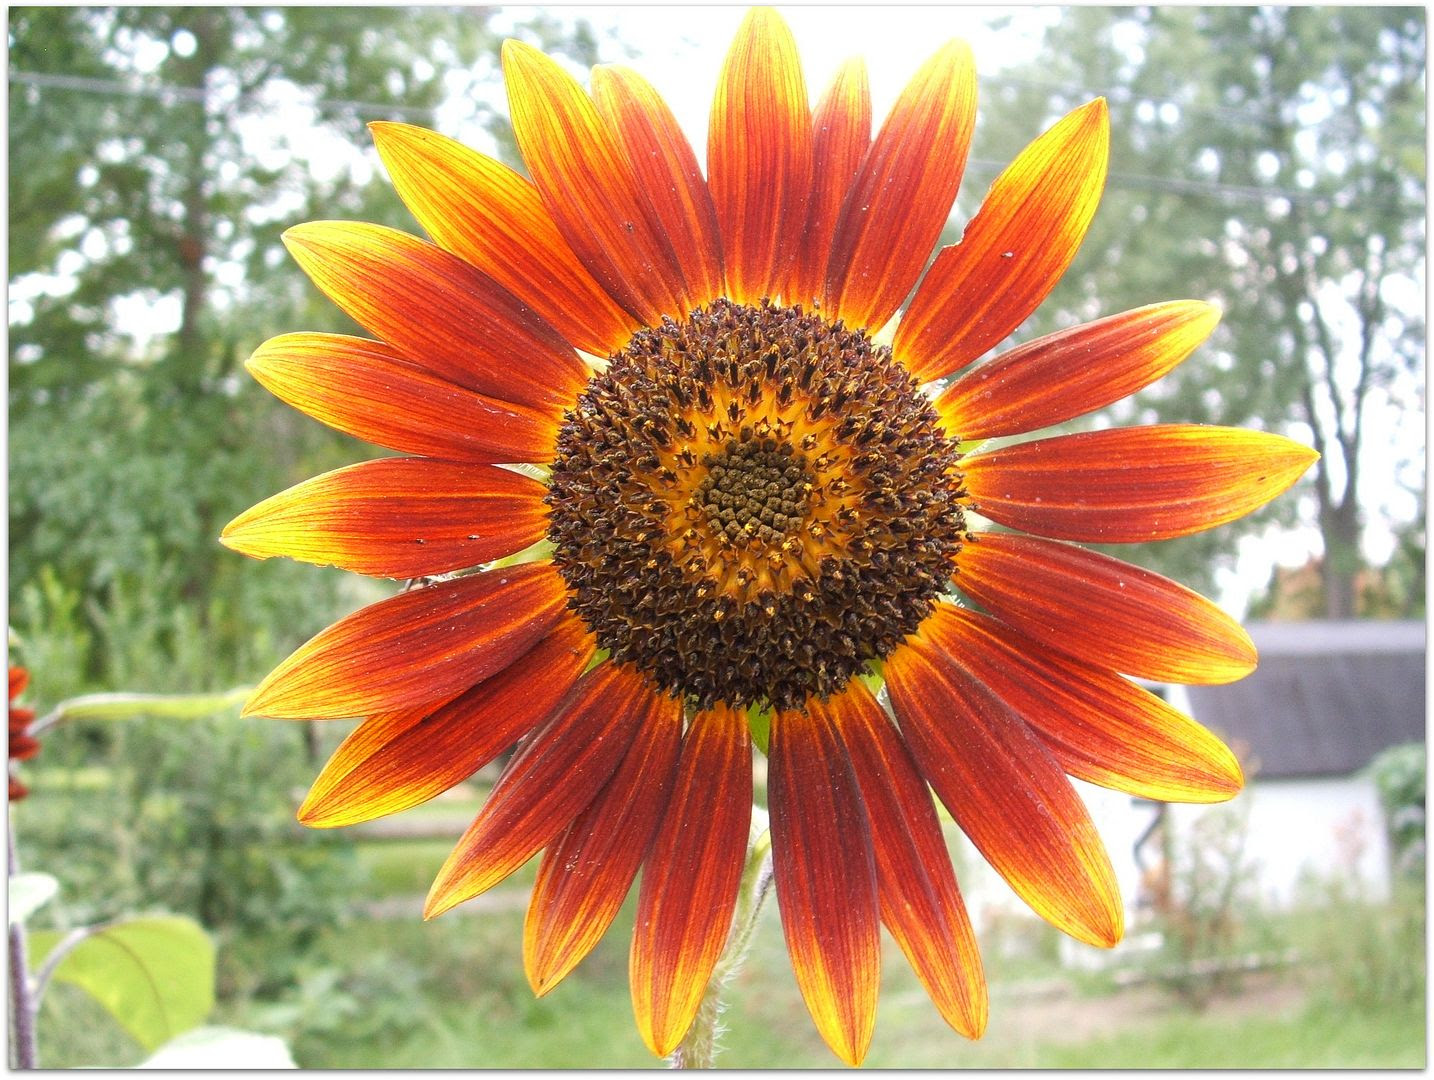 Prado Sunflowers by Angie Ouellette-Tower for godsgrowinggarden.com photo 011_zpsda1213d5.jpg